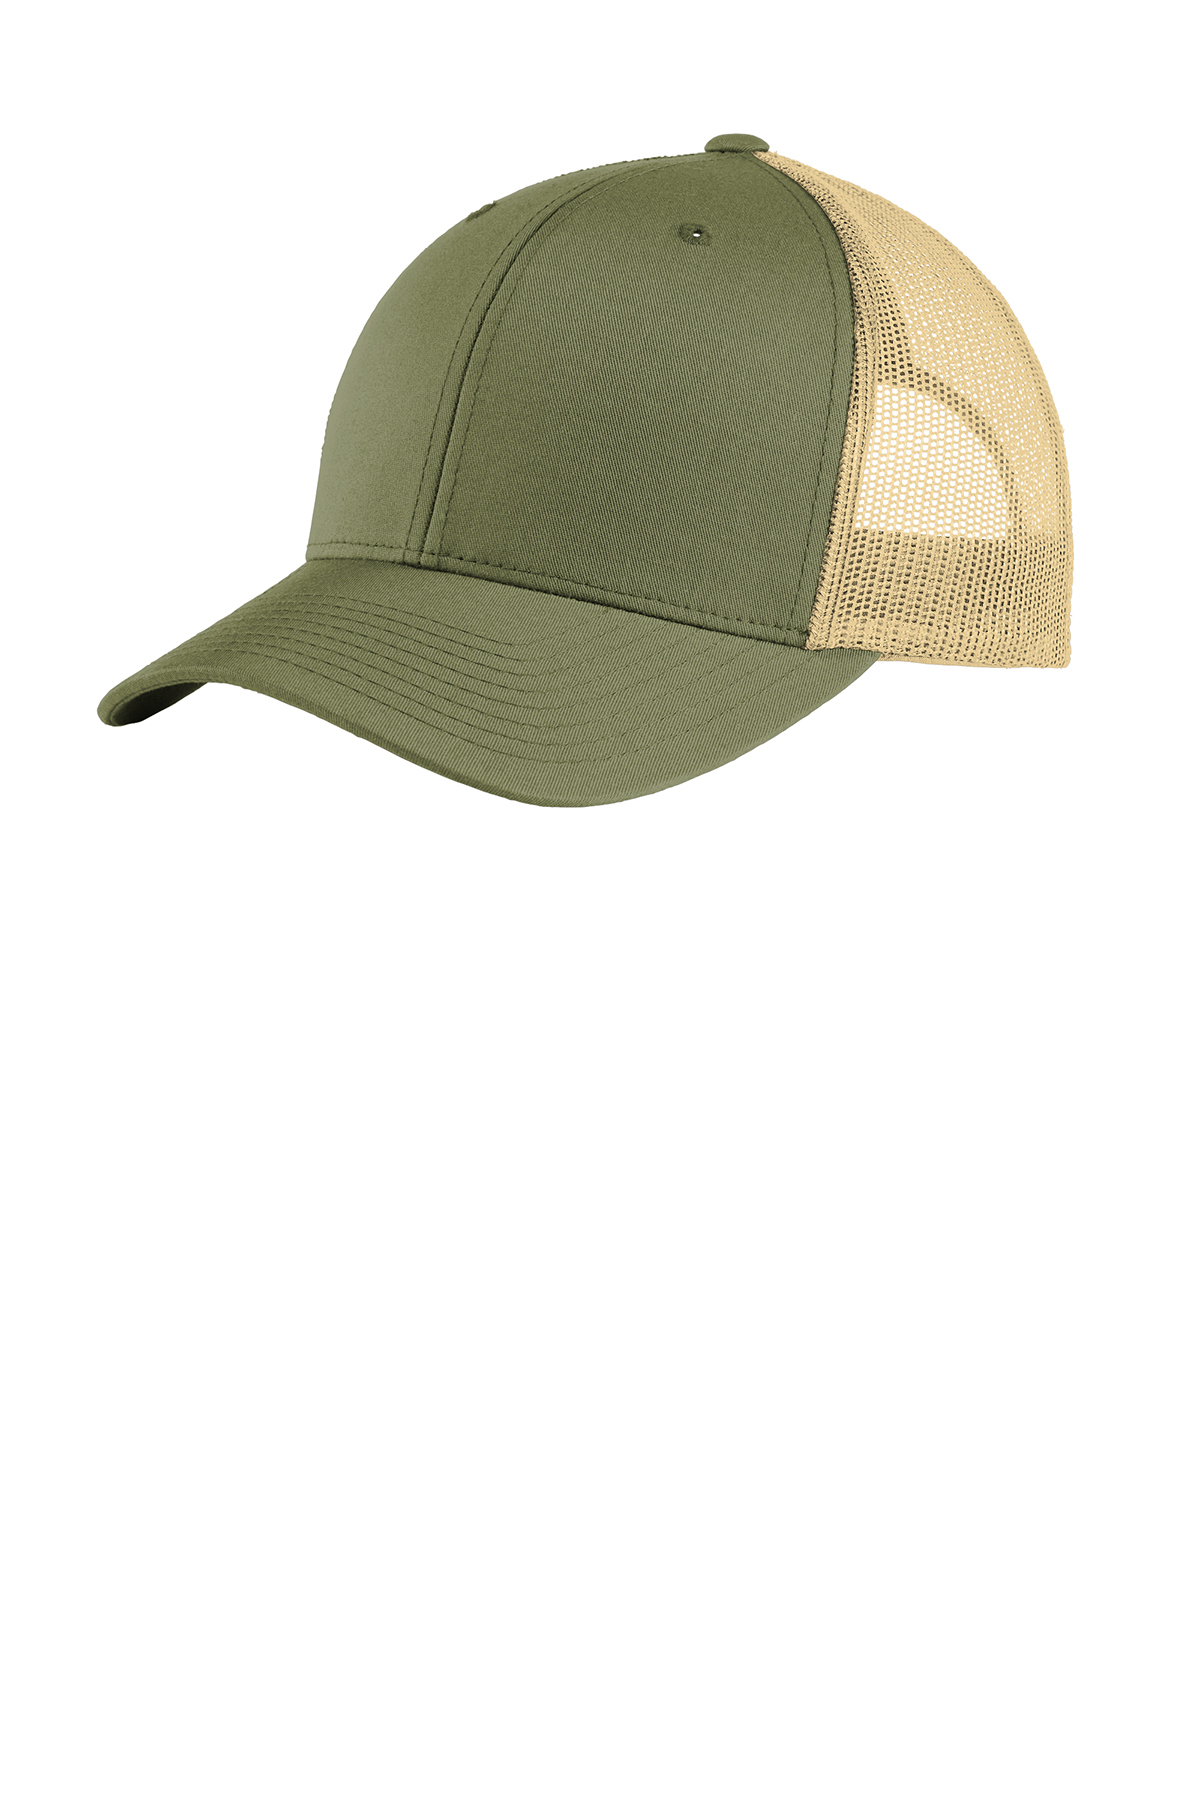 click to view Olive/ Khaki